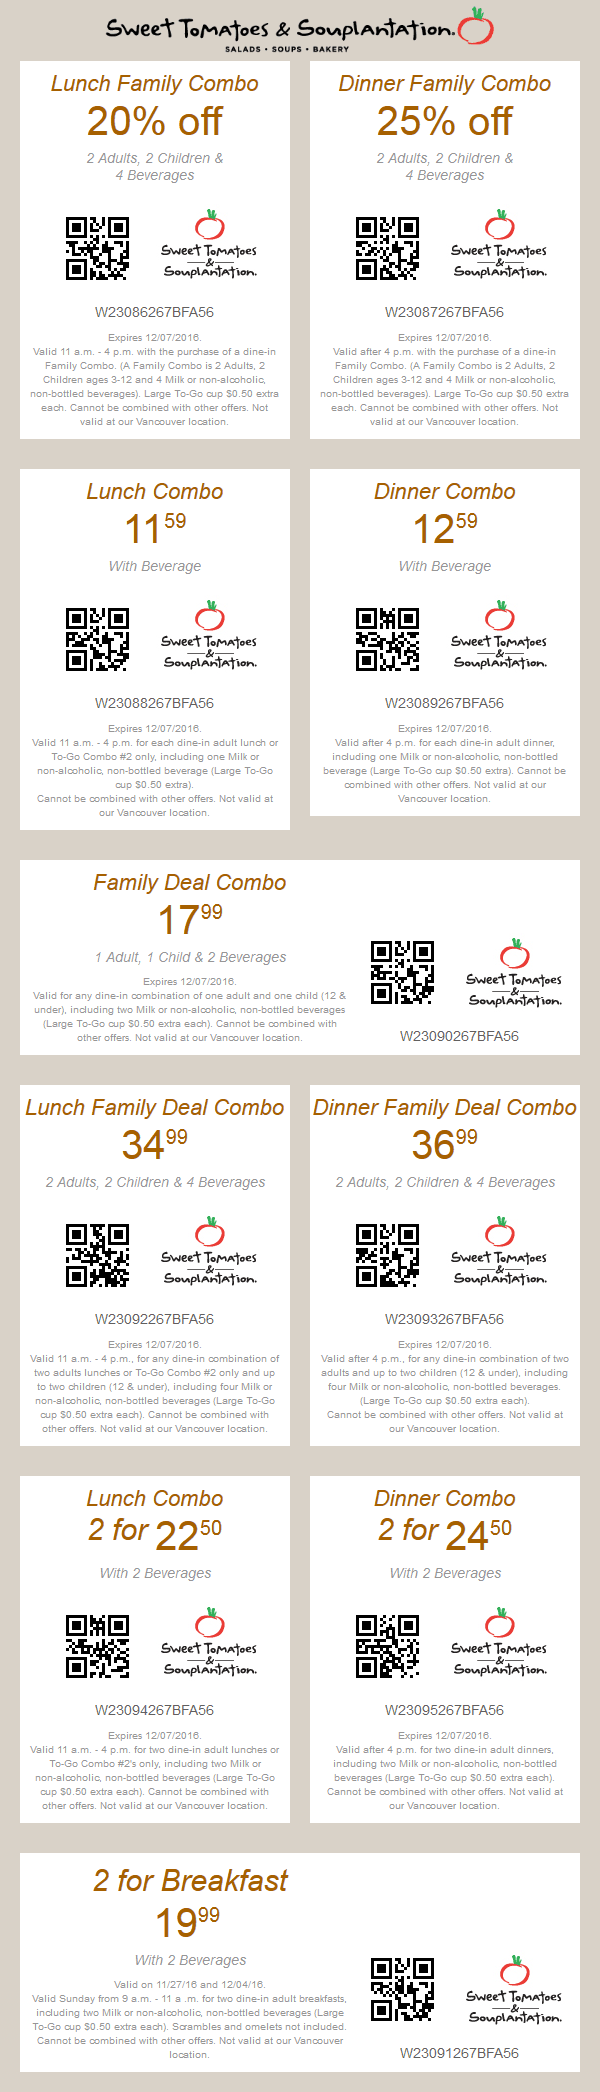 SweetTomatoes.com Promo Coupon 20% off lunch, 25% off dinner & more at Sweet Tomatoes & Souplantation